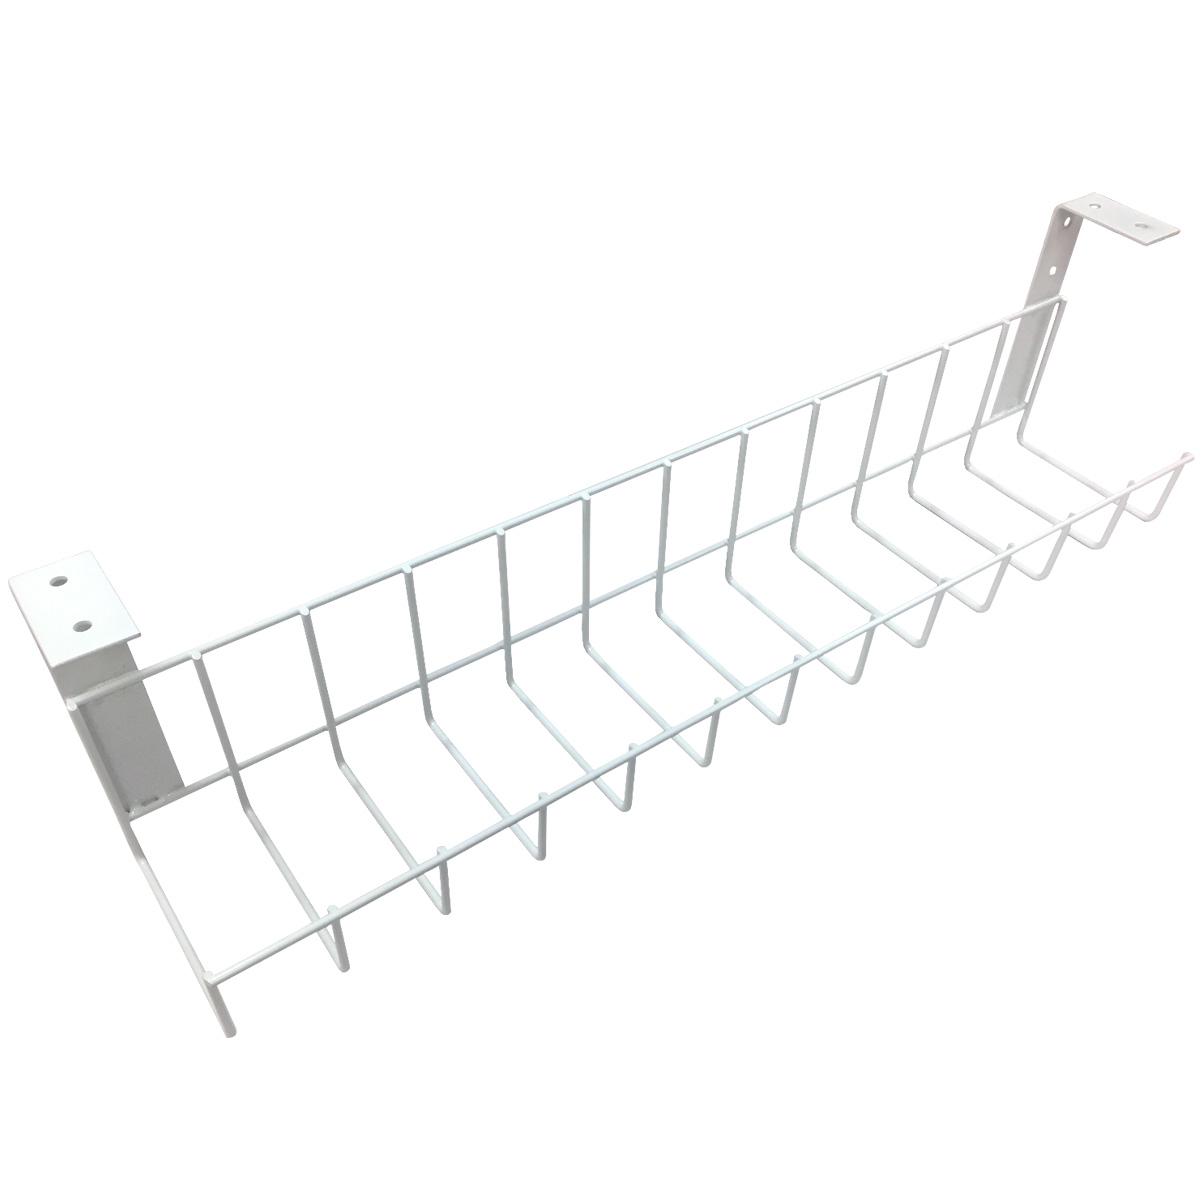 The Basket Cable Rack Wire Mesh System | Mounts on Walls and Under Desks